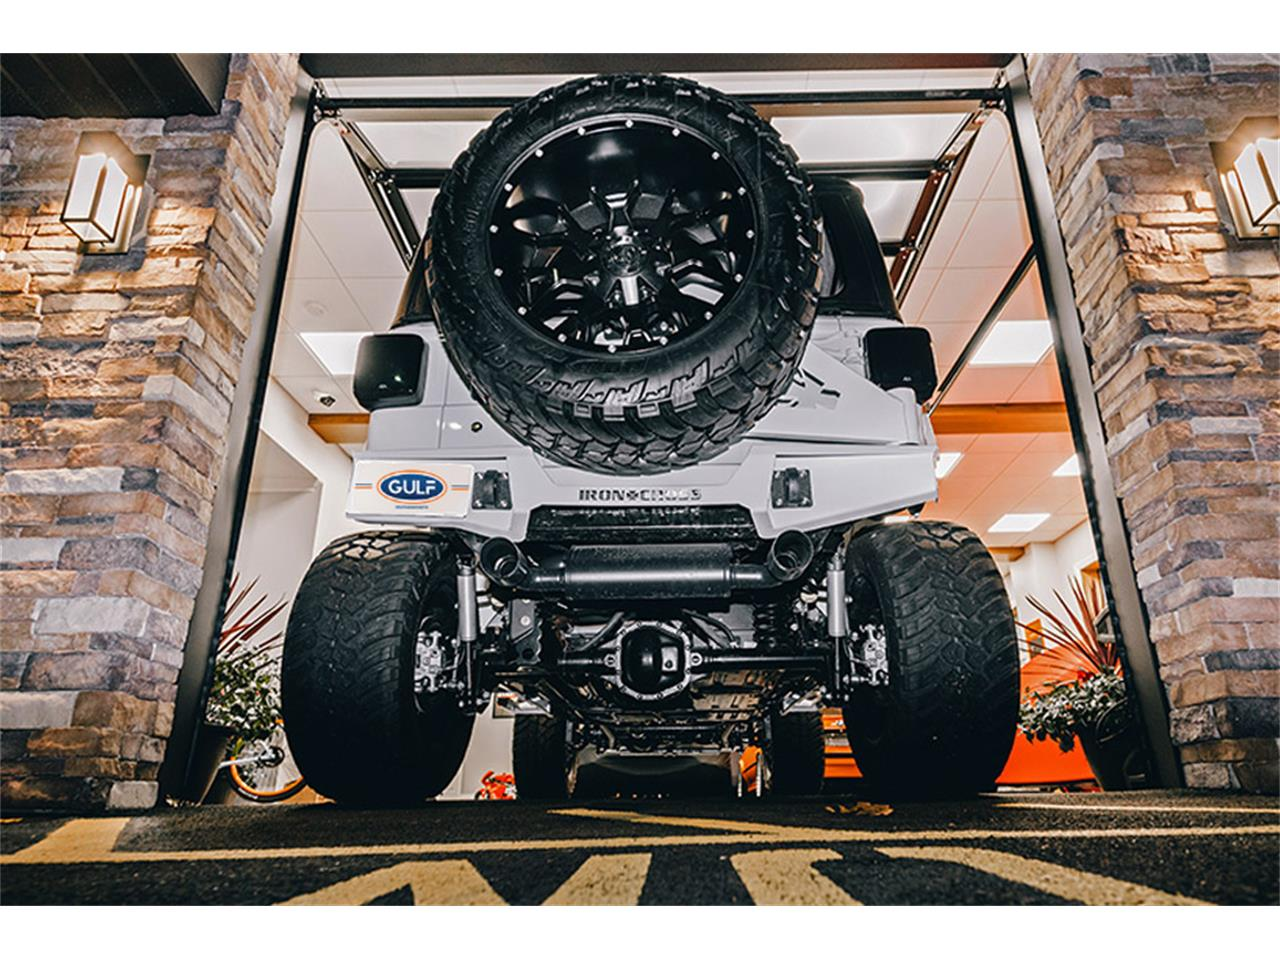 Large Picture of 2018 Jeep Wrangler located in Uncasville Connecticut Auction Vehicle - QCK1